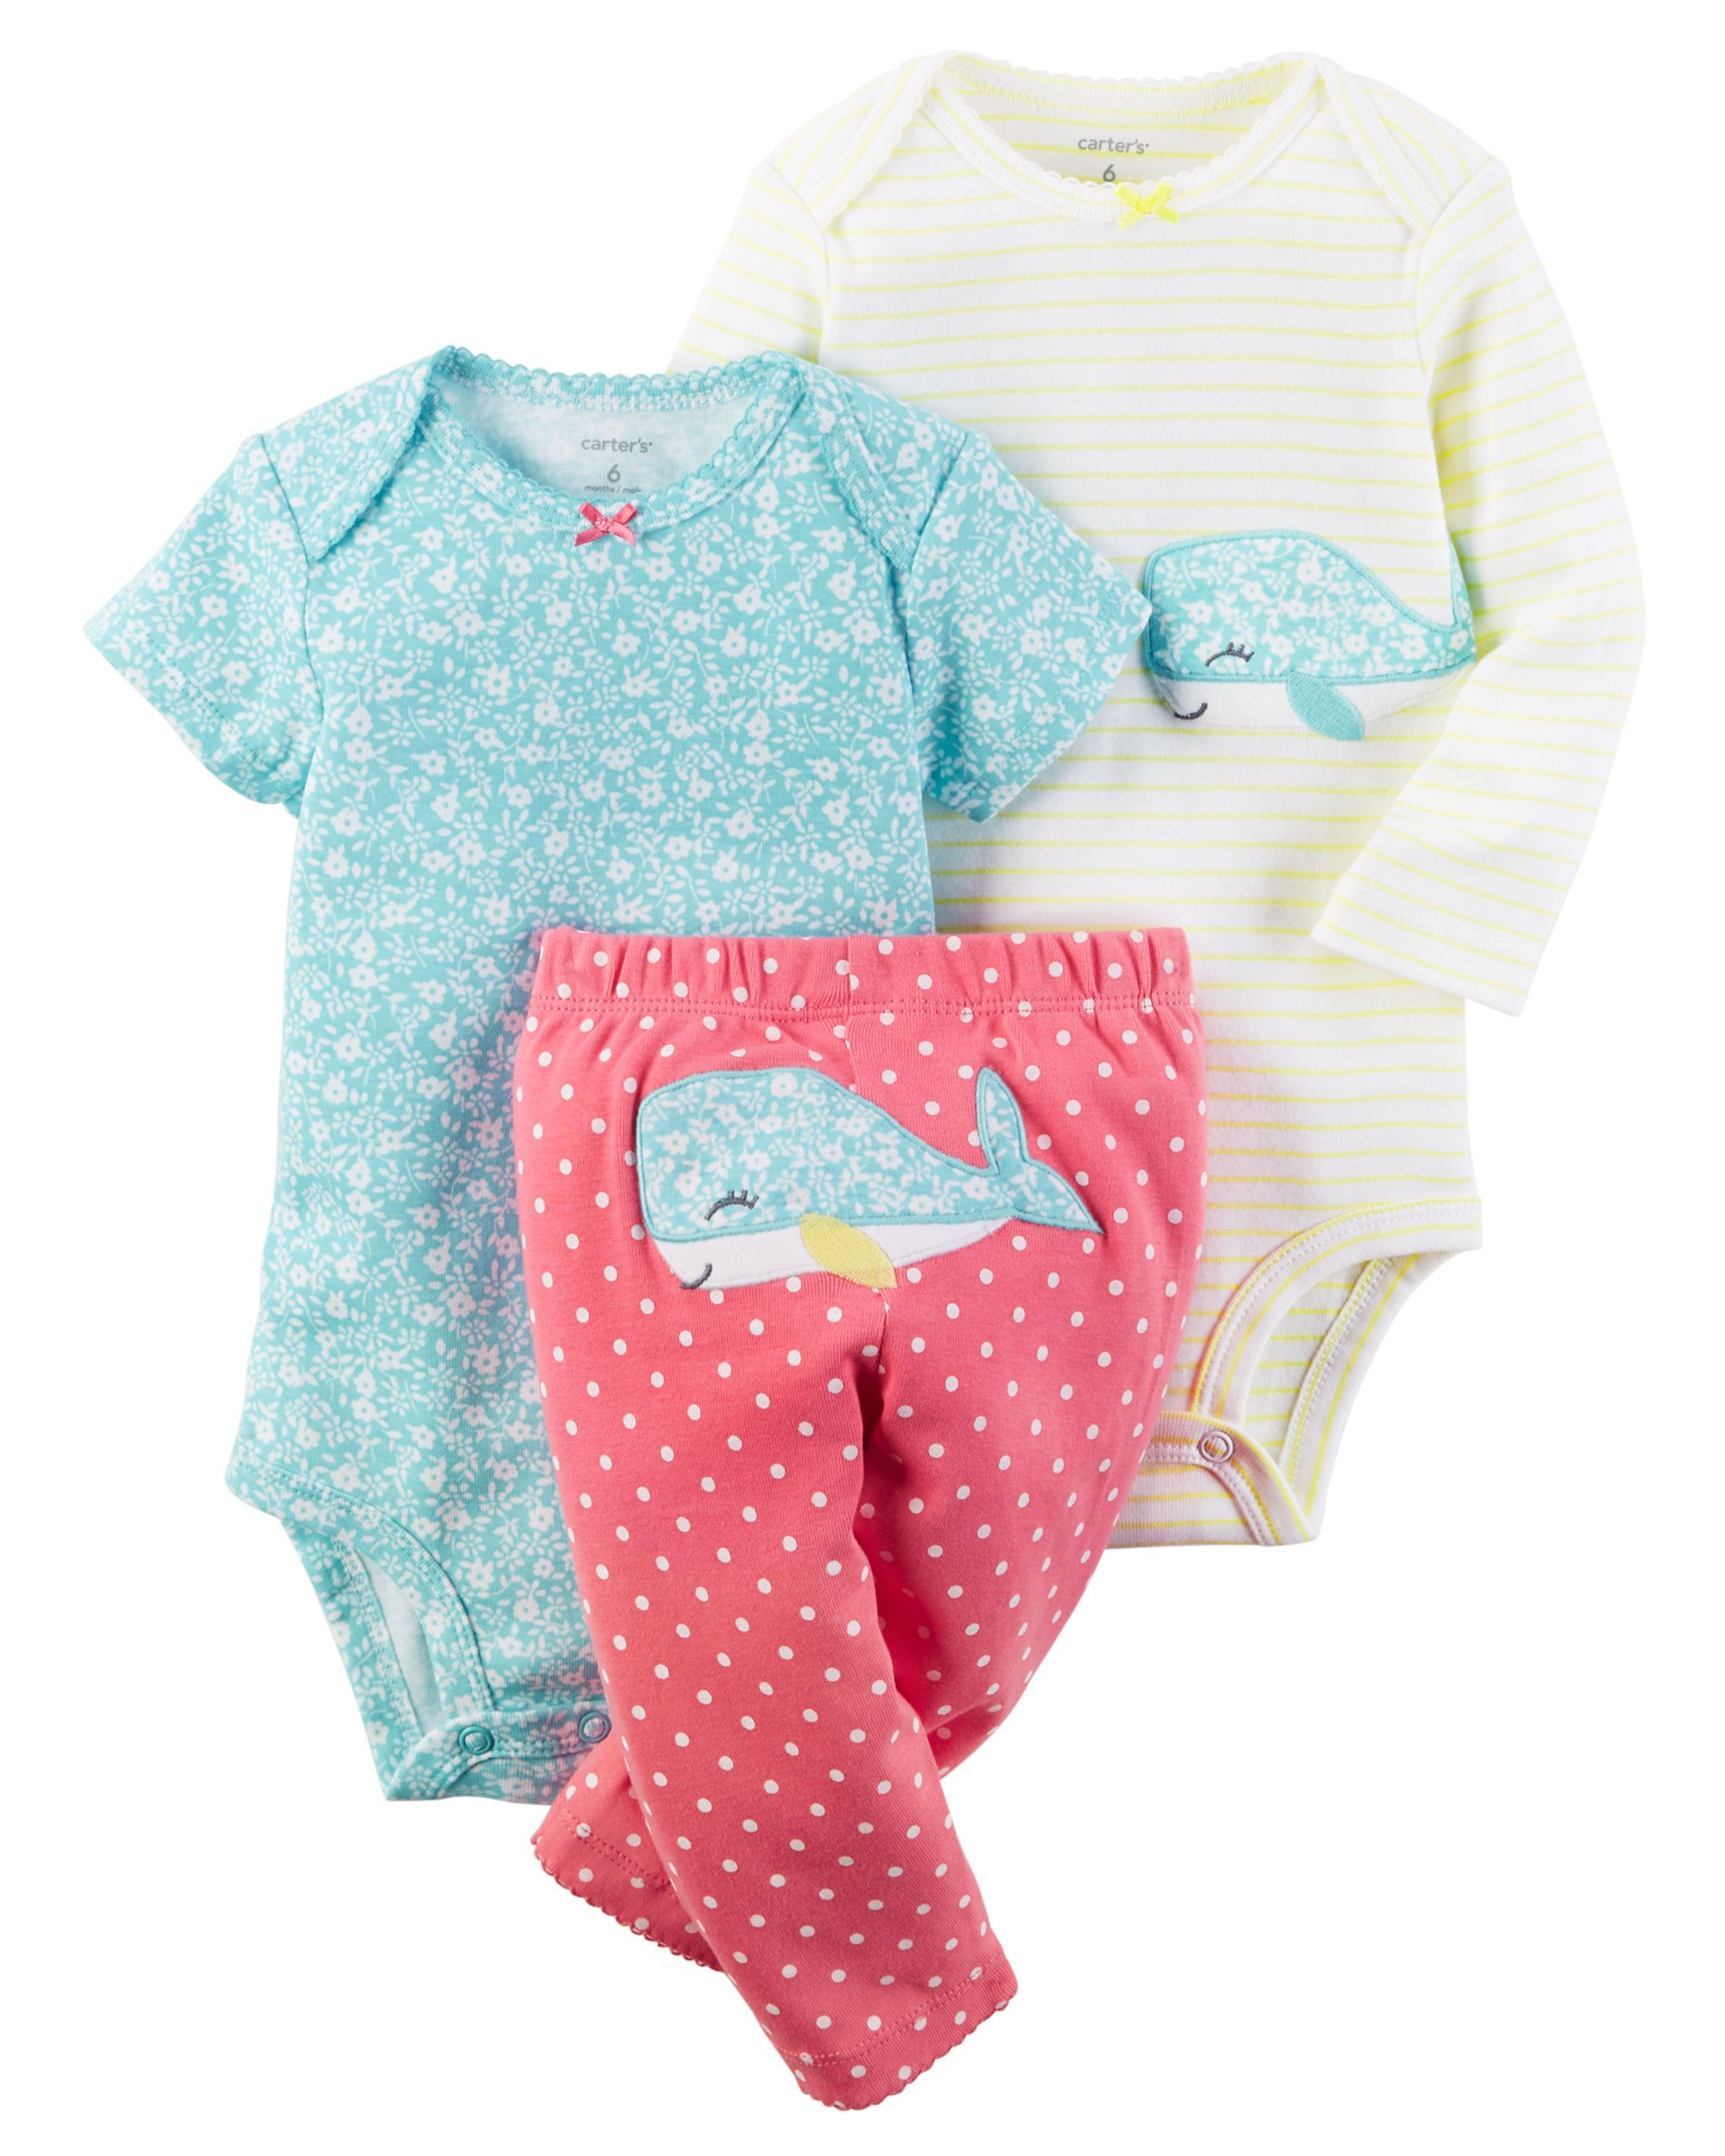 Carters Baby Girls Little Blooms Dress Set Size 3-9-Month New